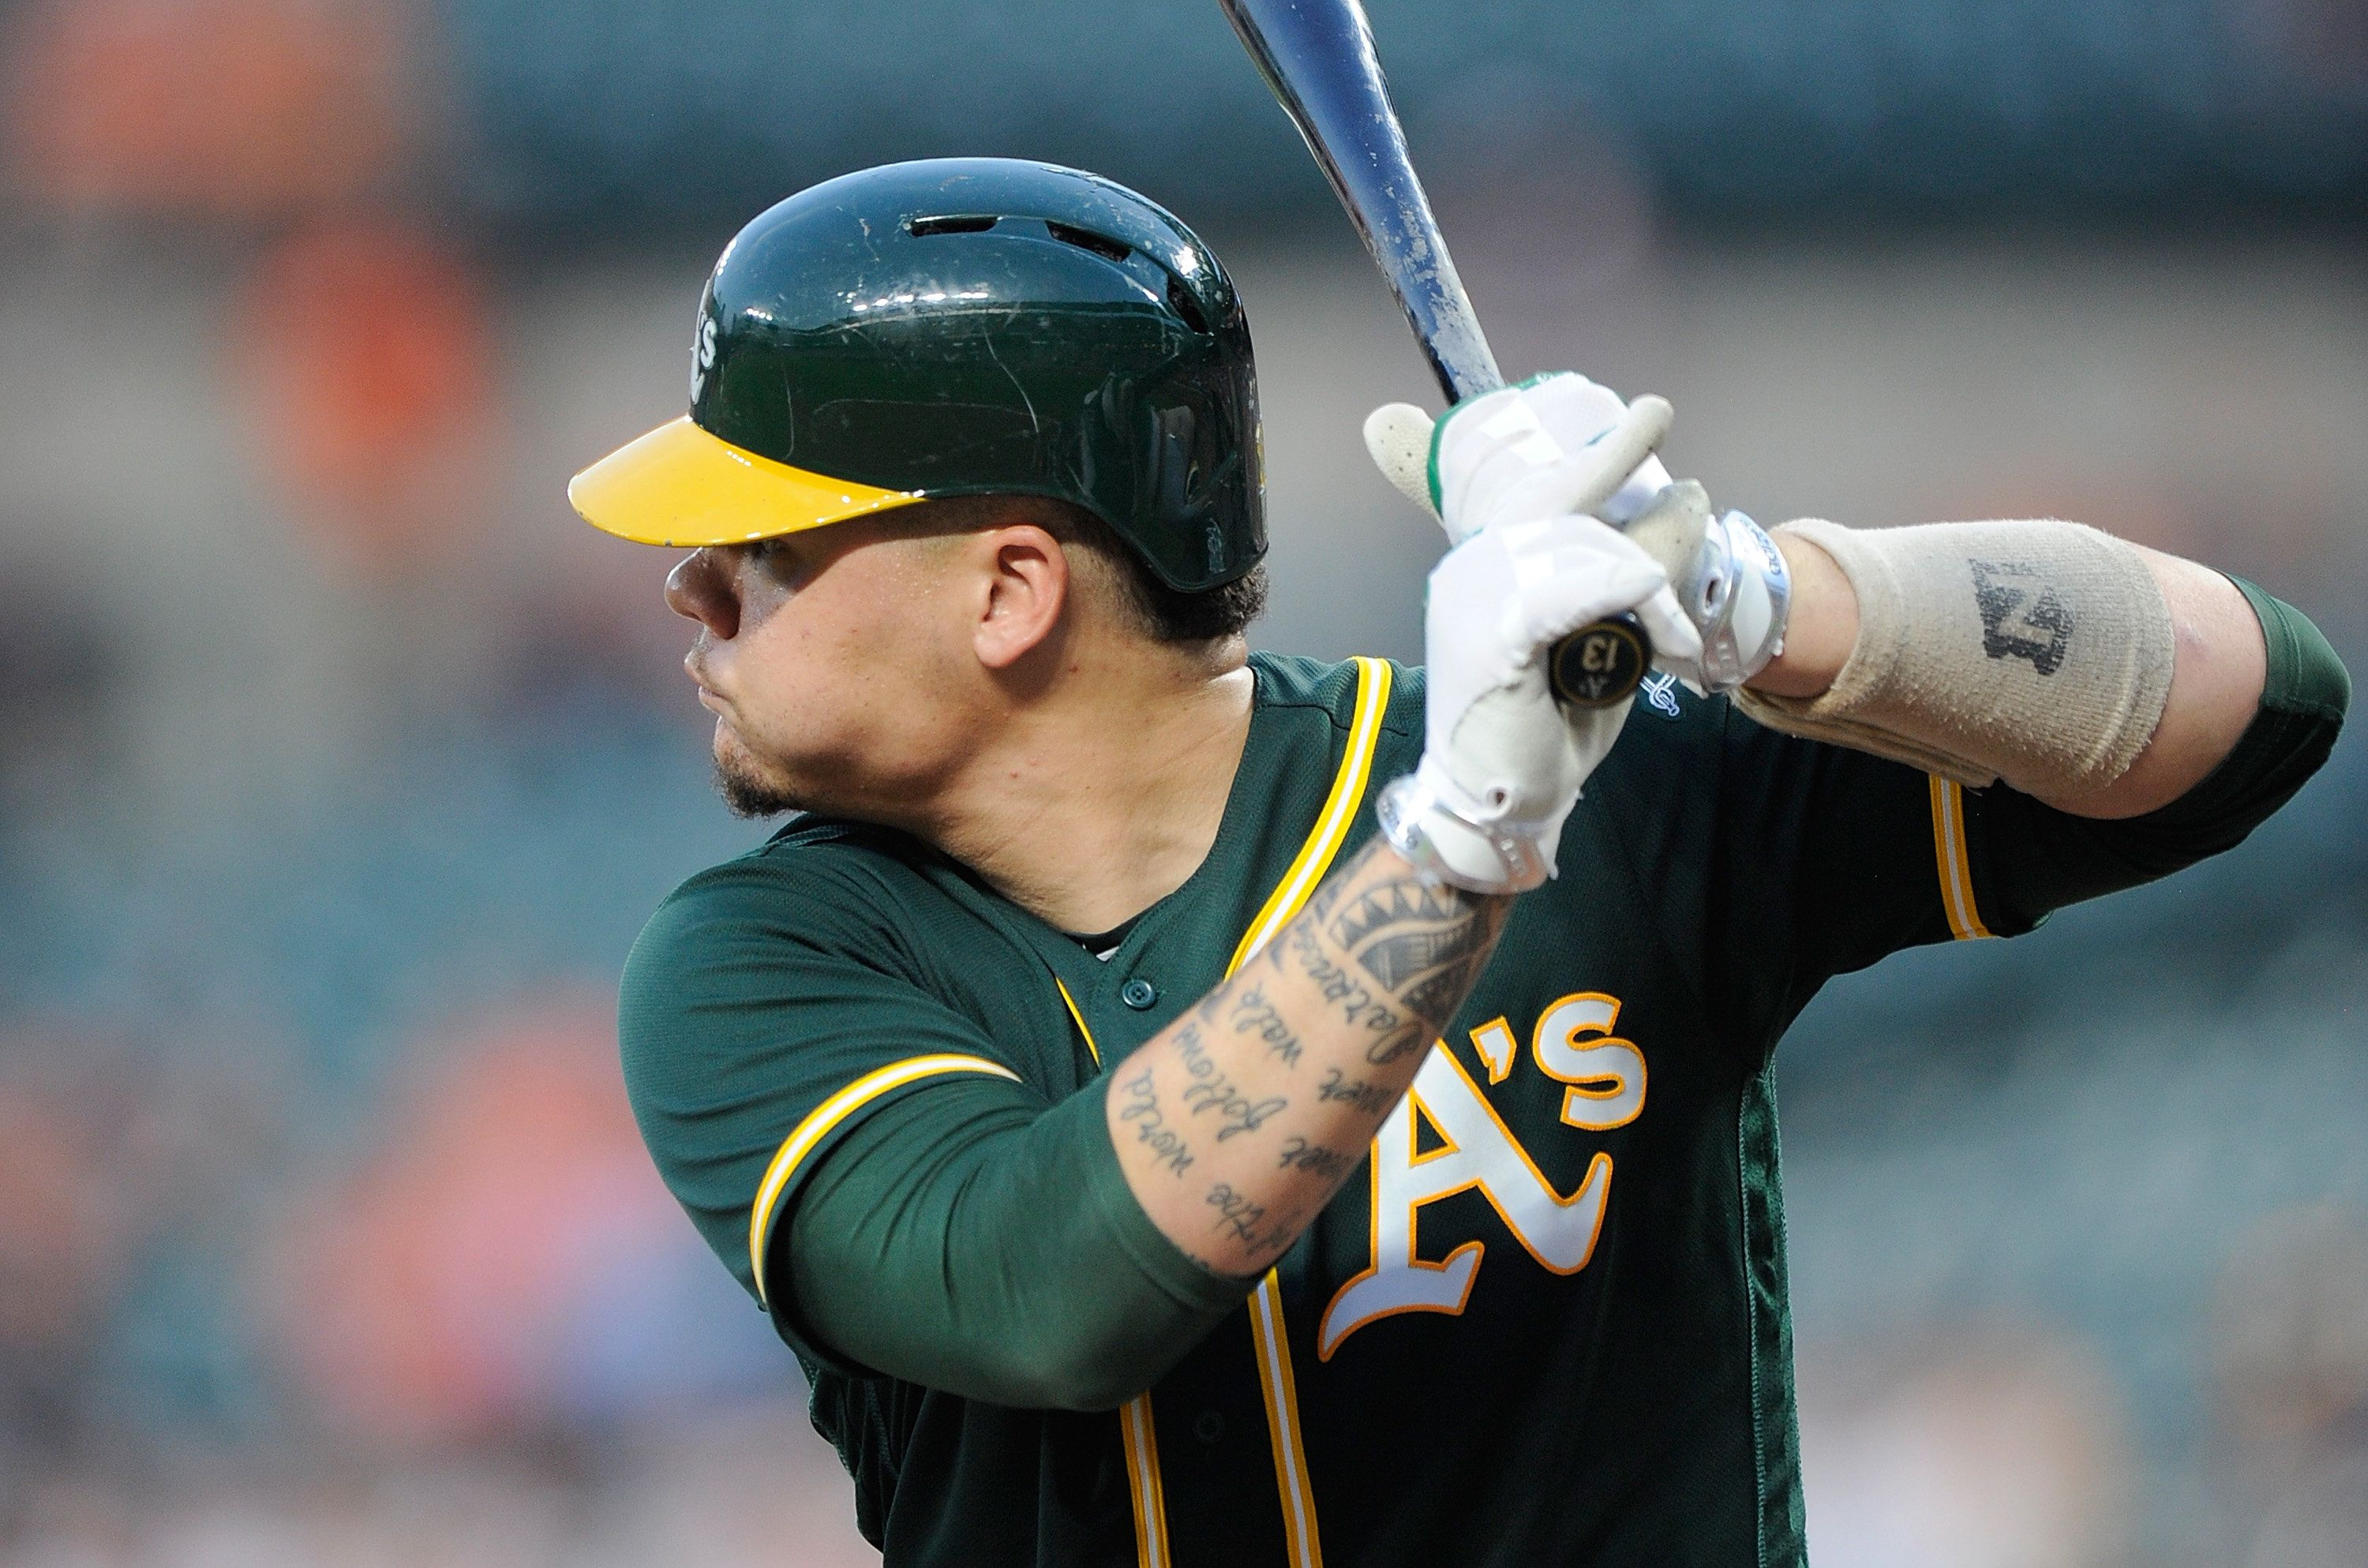 BALTIMORE, MD - AUGUST 22:  Bruce Maxwell #13 of the Oakland Athletics bats against the Baltimore Orioles at Oriole Park at Camden Yards on August 22, 2017 in Baltimore, Maryland.  (Photo by G Fiume/Getty Images)